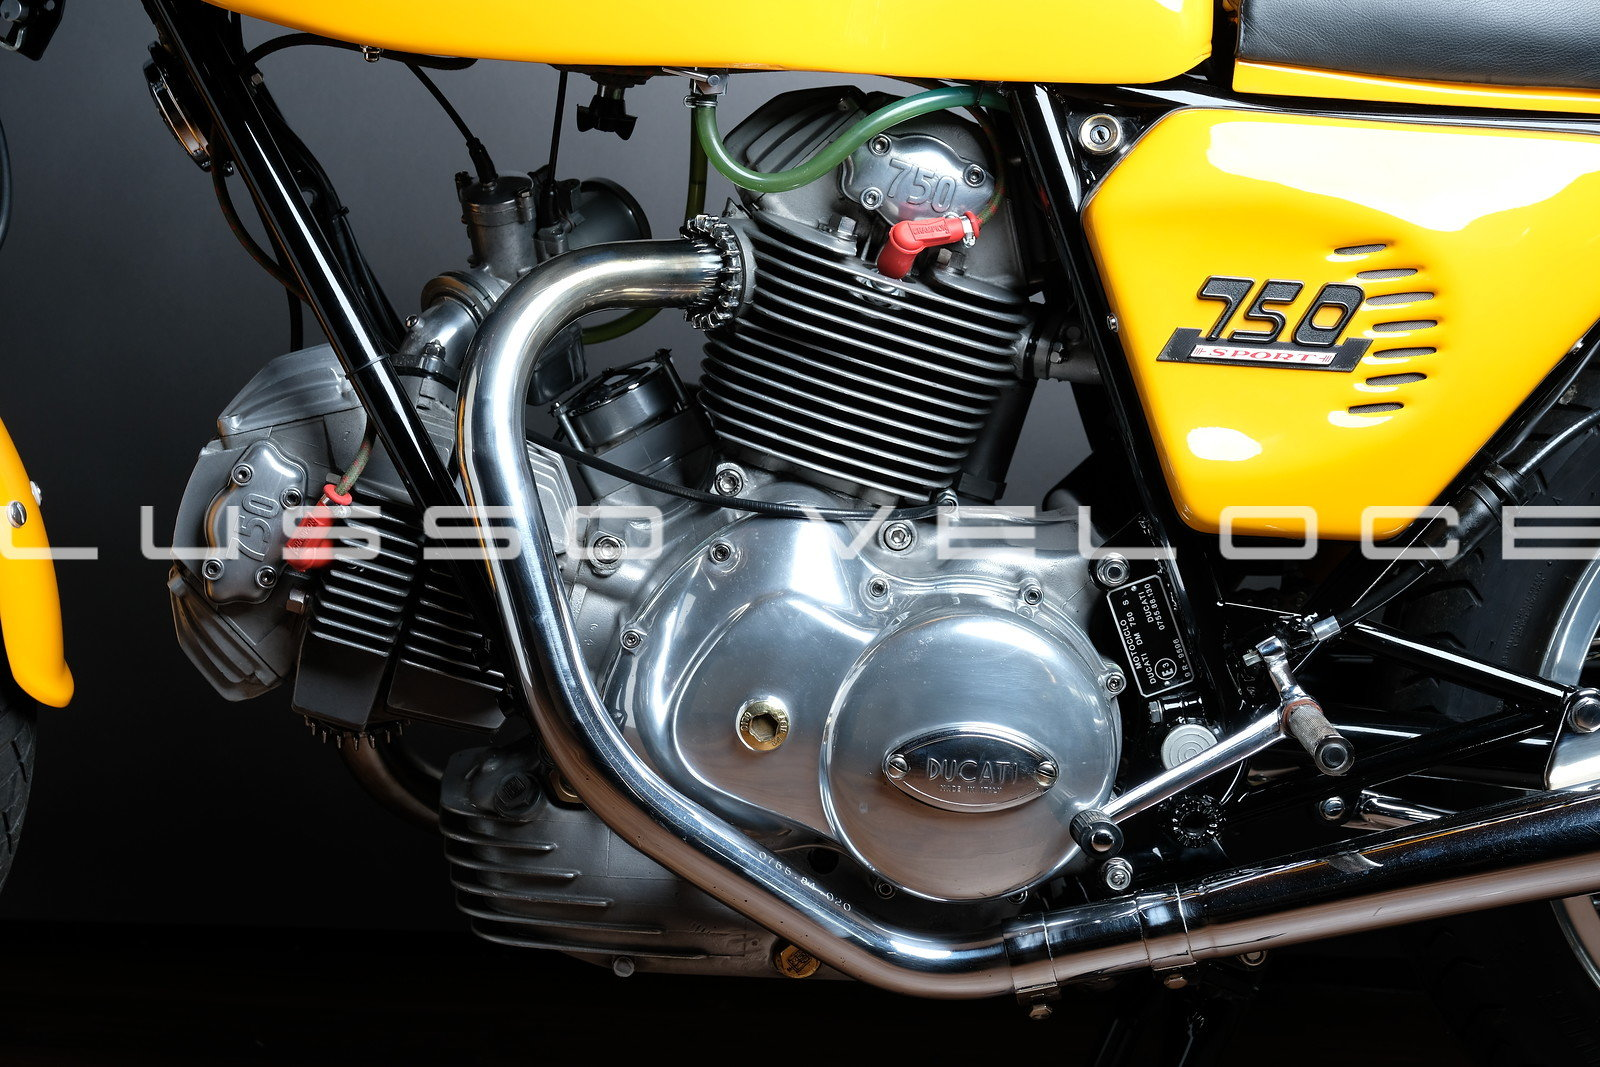 Stunning Ducati Sport roundcase 750 1973 For Sale (picture 4 of 6)